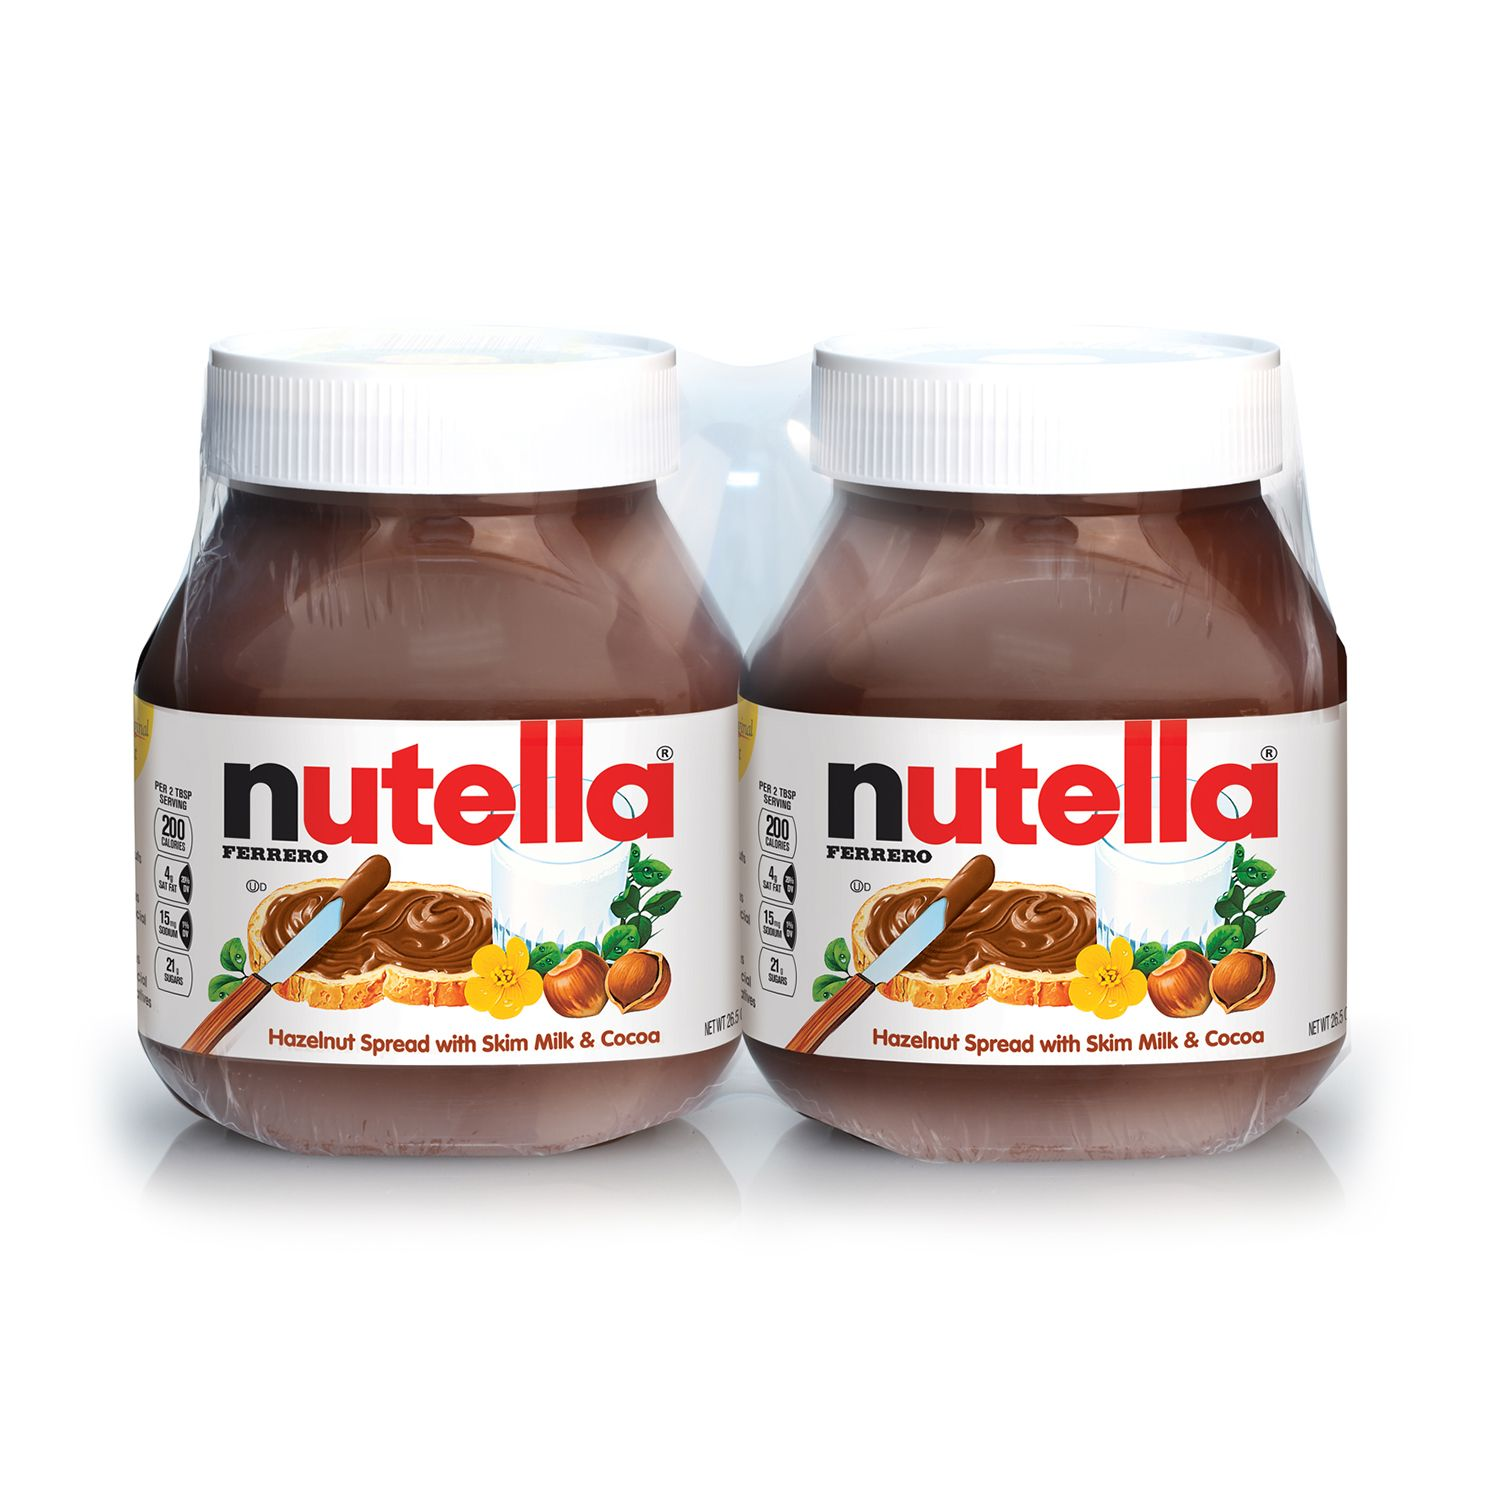 Nutella Twin Pack (26.5 oz. jars, 2 ct.)